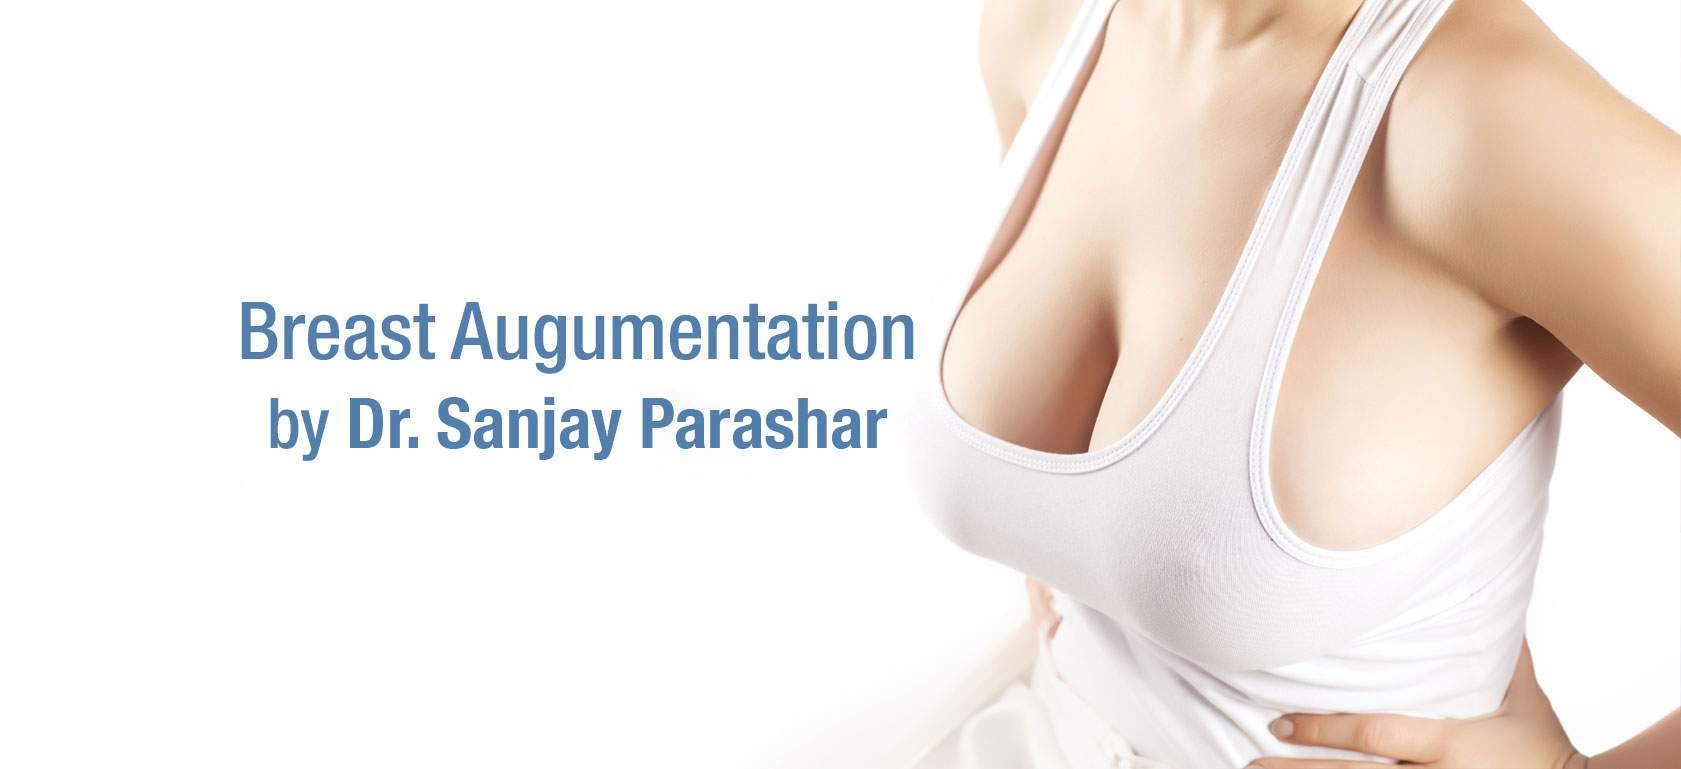 Breast Implants Dubai - Breast Augmentation Dubai - Breast Surgery By Dr Sanjay